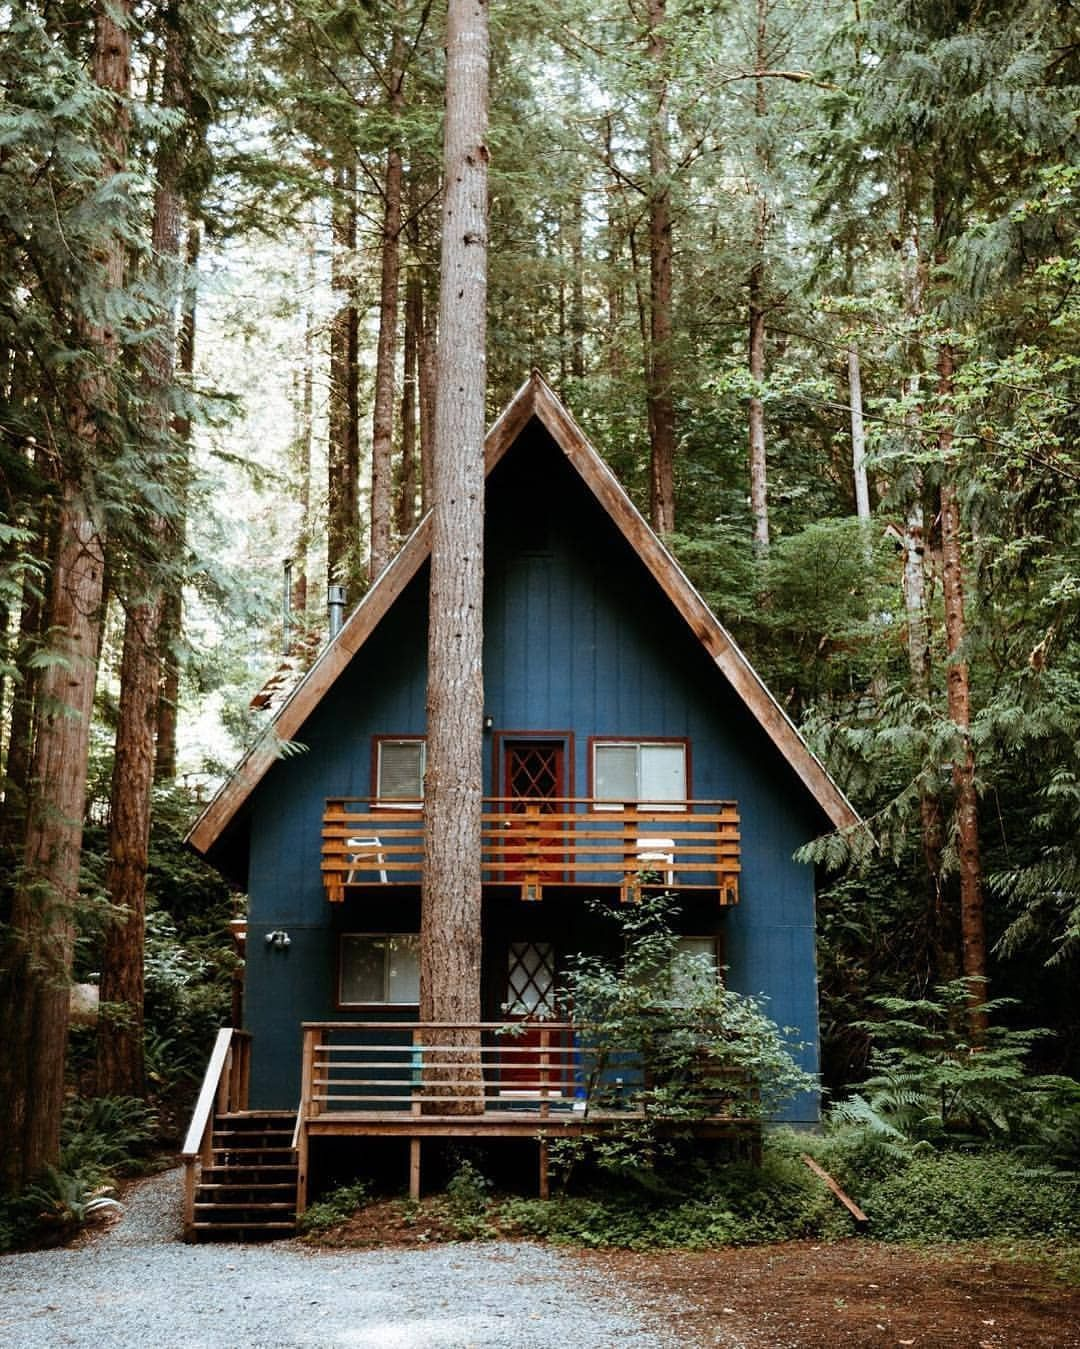 The ultimate cabin in the woods somewhere far far away